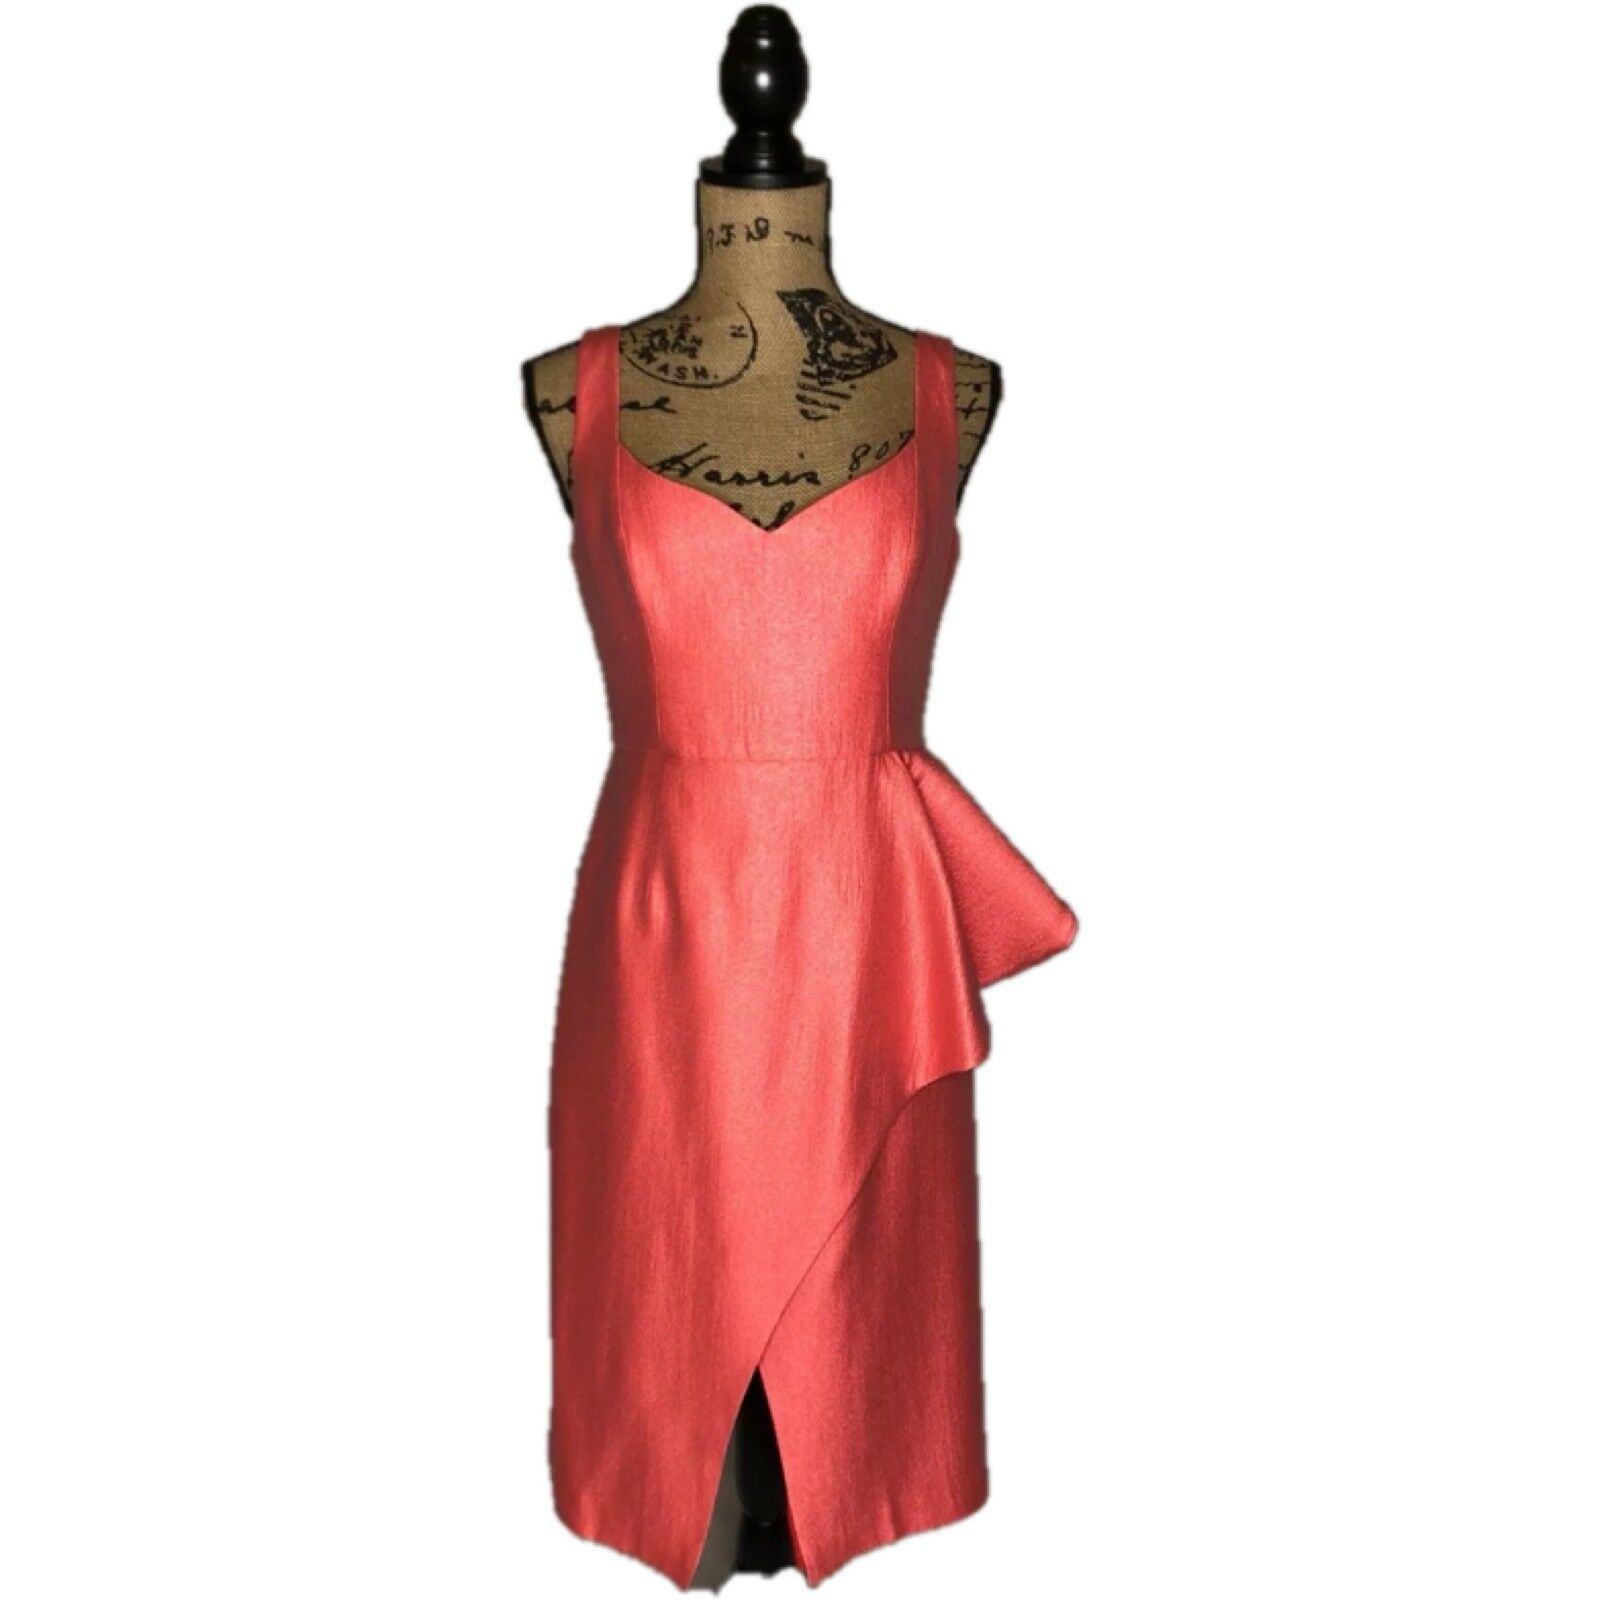 schwarz Halo Eve By Laurel Berman damen Größe 6 Coral Sheath Sleeveless Dress